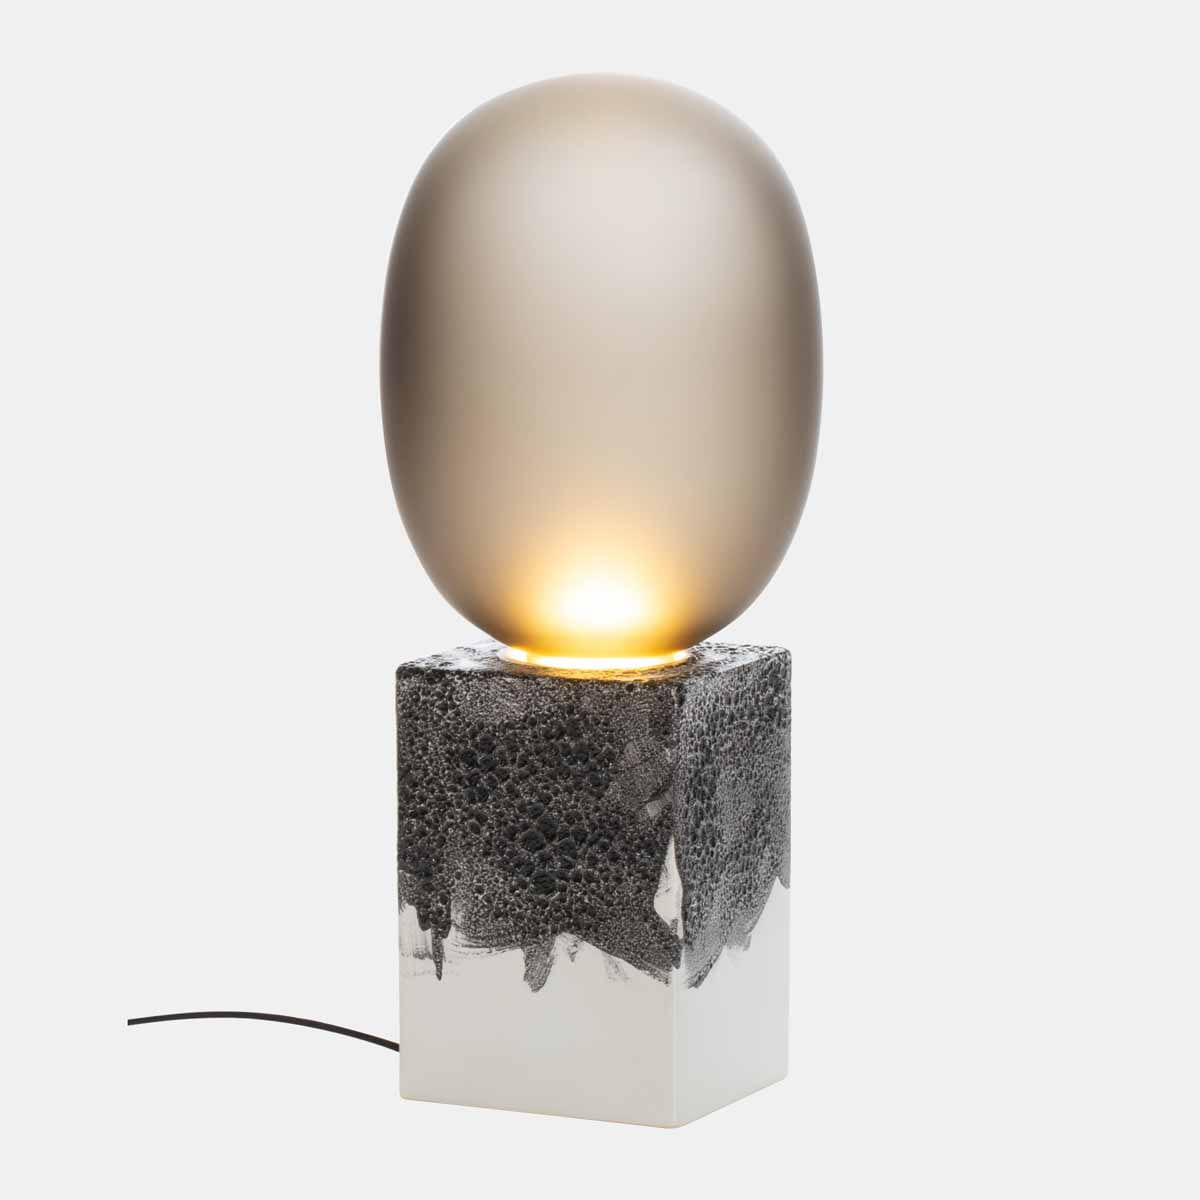 MAGMA Lamp by Ferreol Babin for Pulpo at Imm Cologne 2019   Yellowtrace